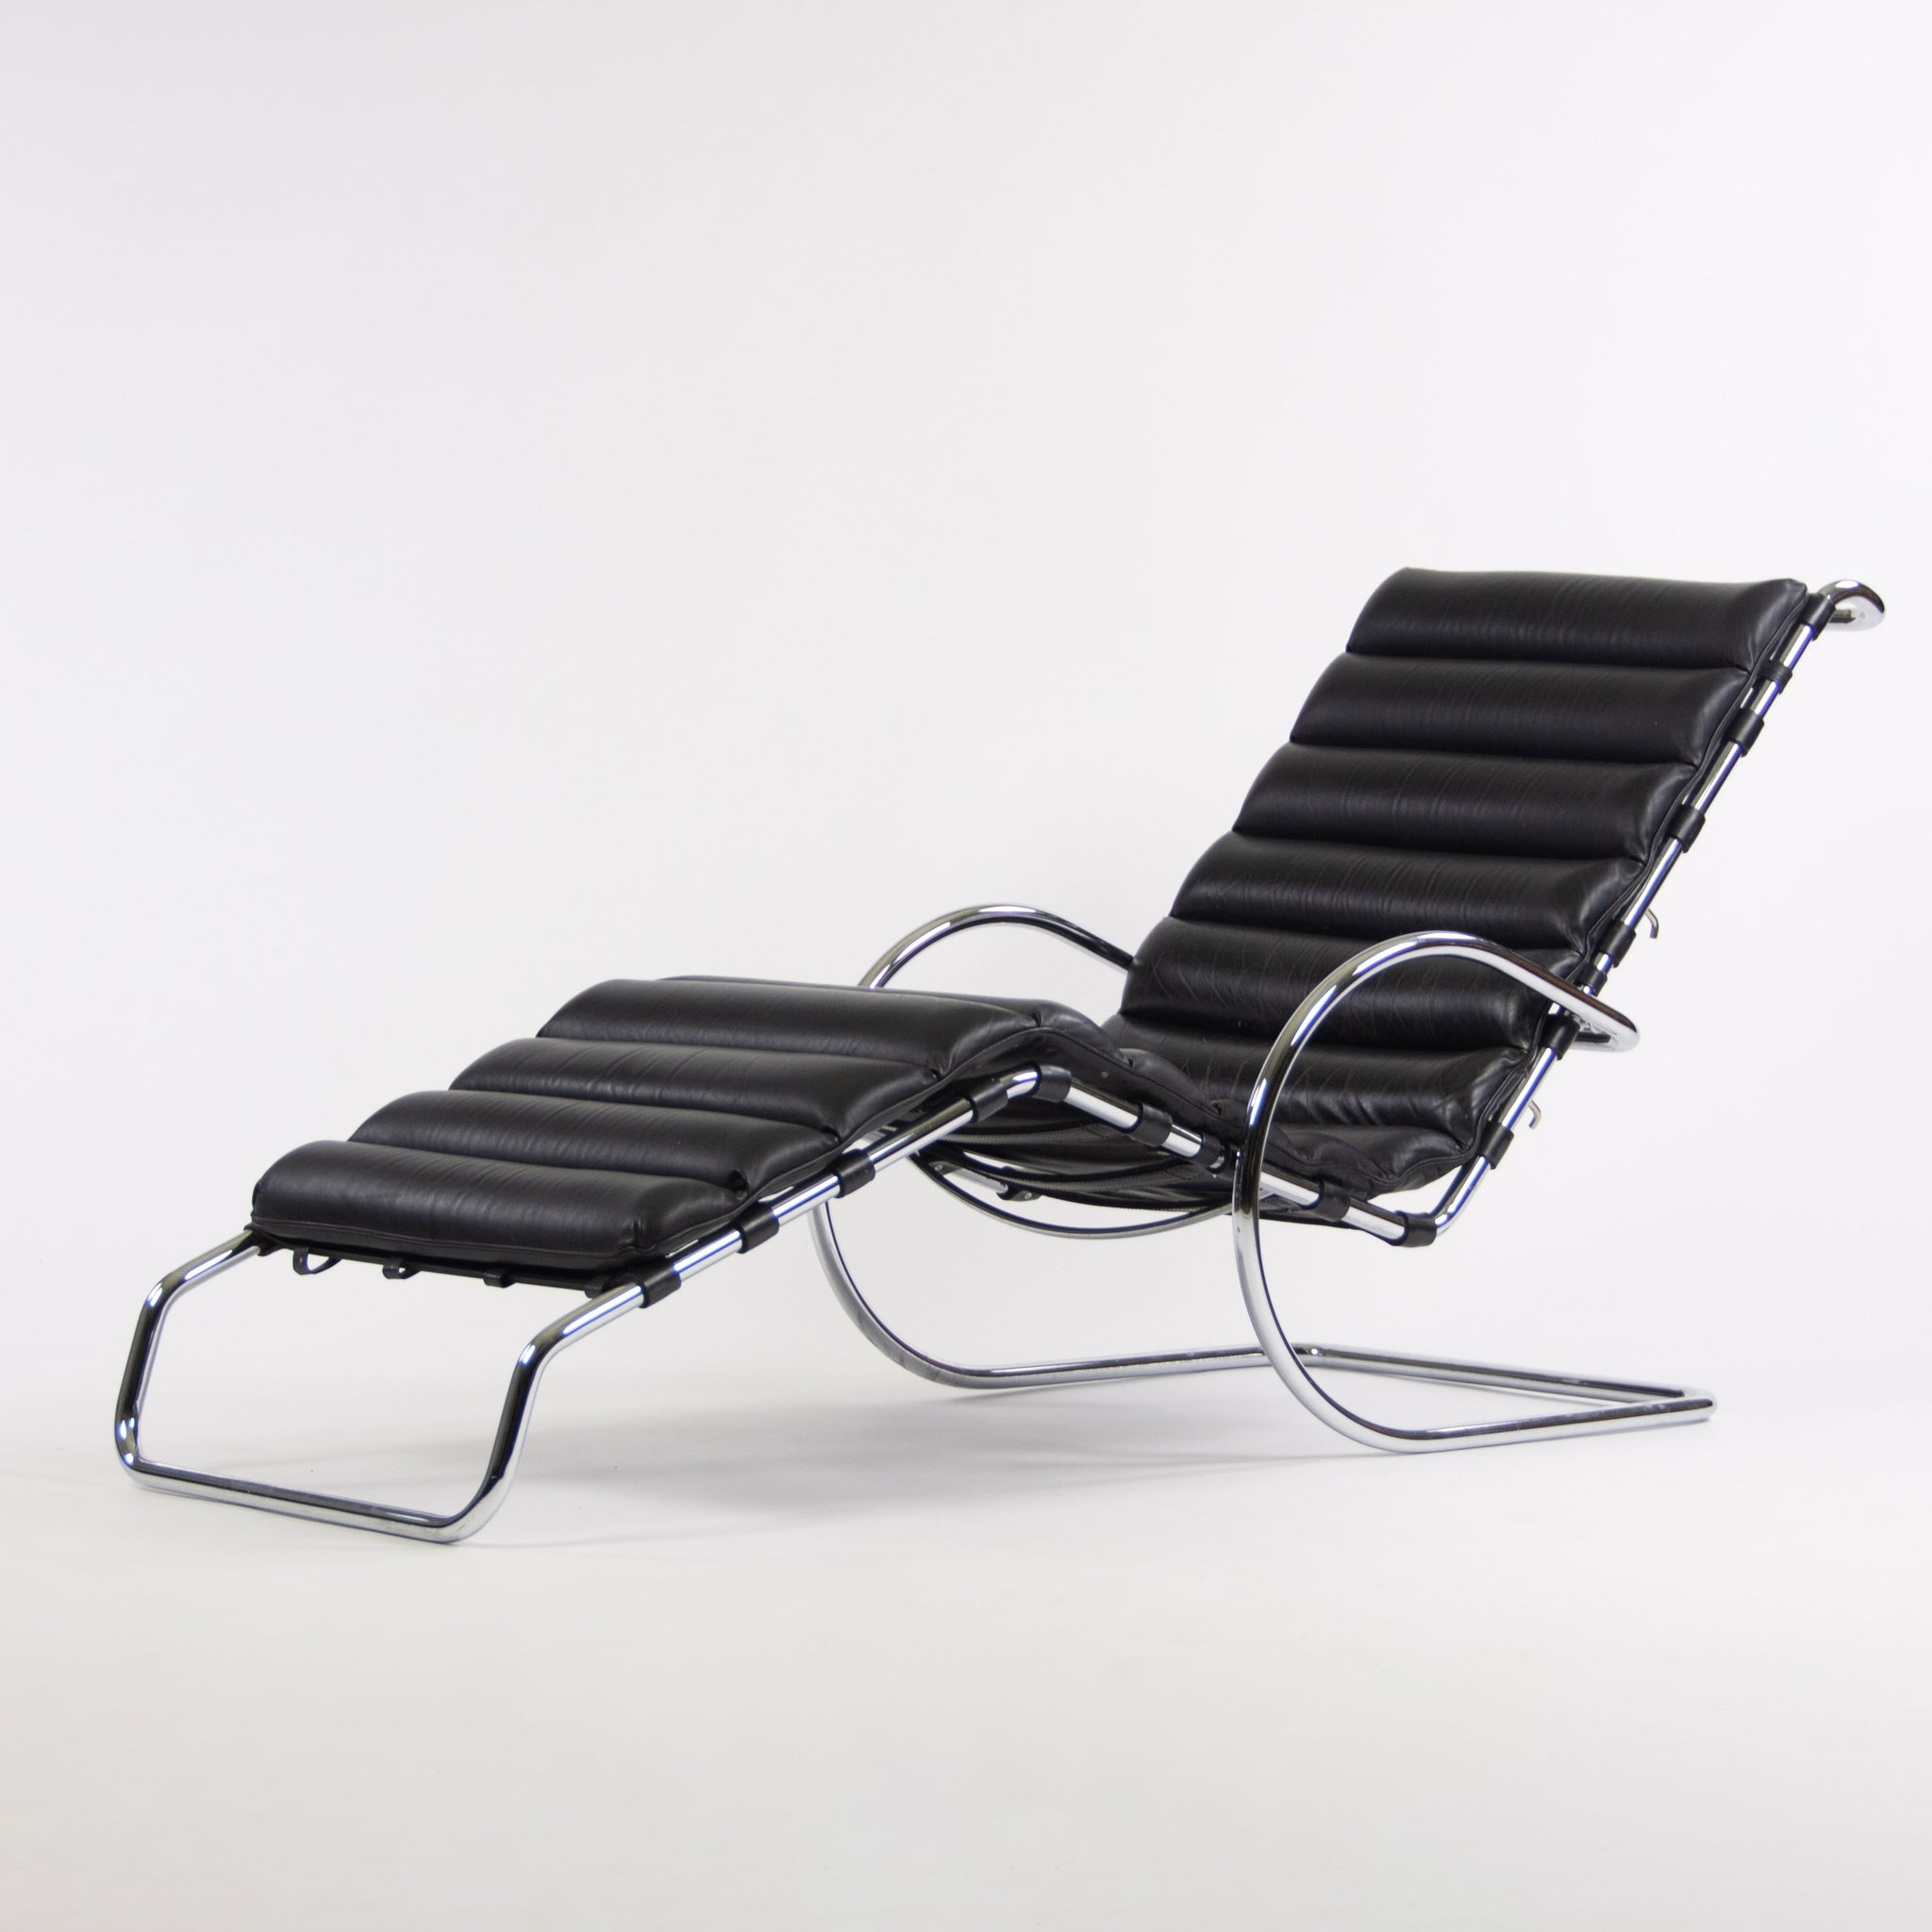 SOLD Knoll International Mies Van Der Rohe MR Chaise Adjustable Lounge Chair Vintage